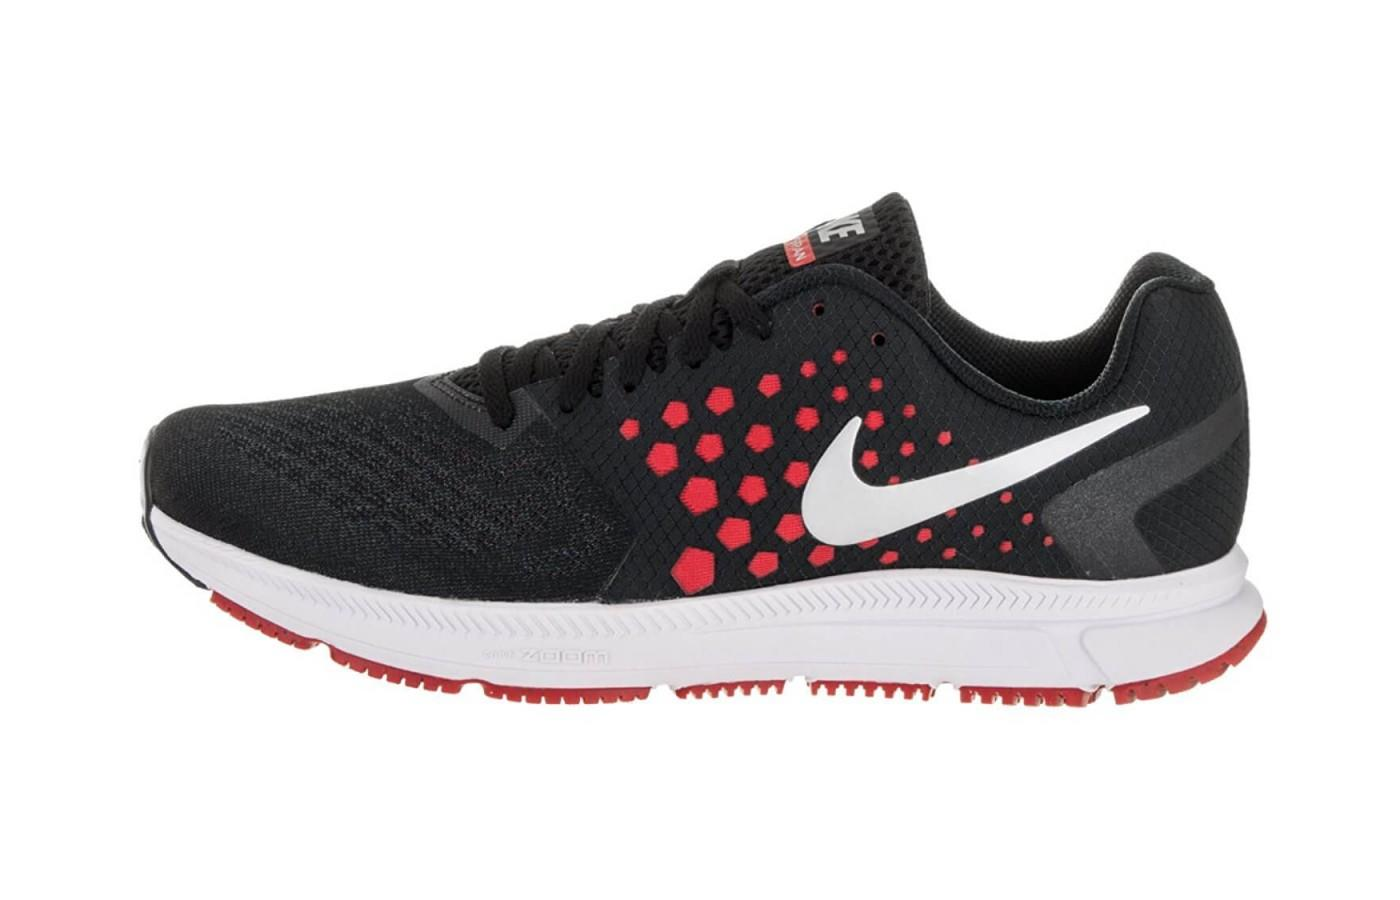 The dual layered midsole provides great cushioning in the Zoom Span